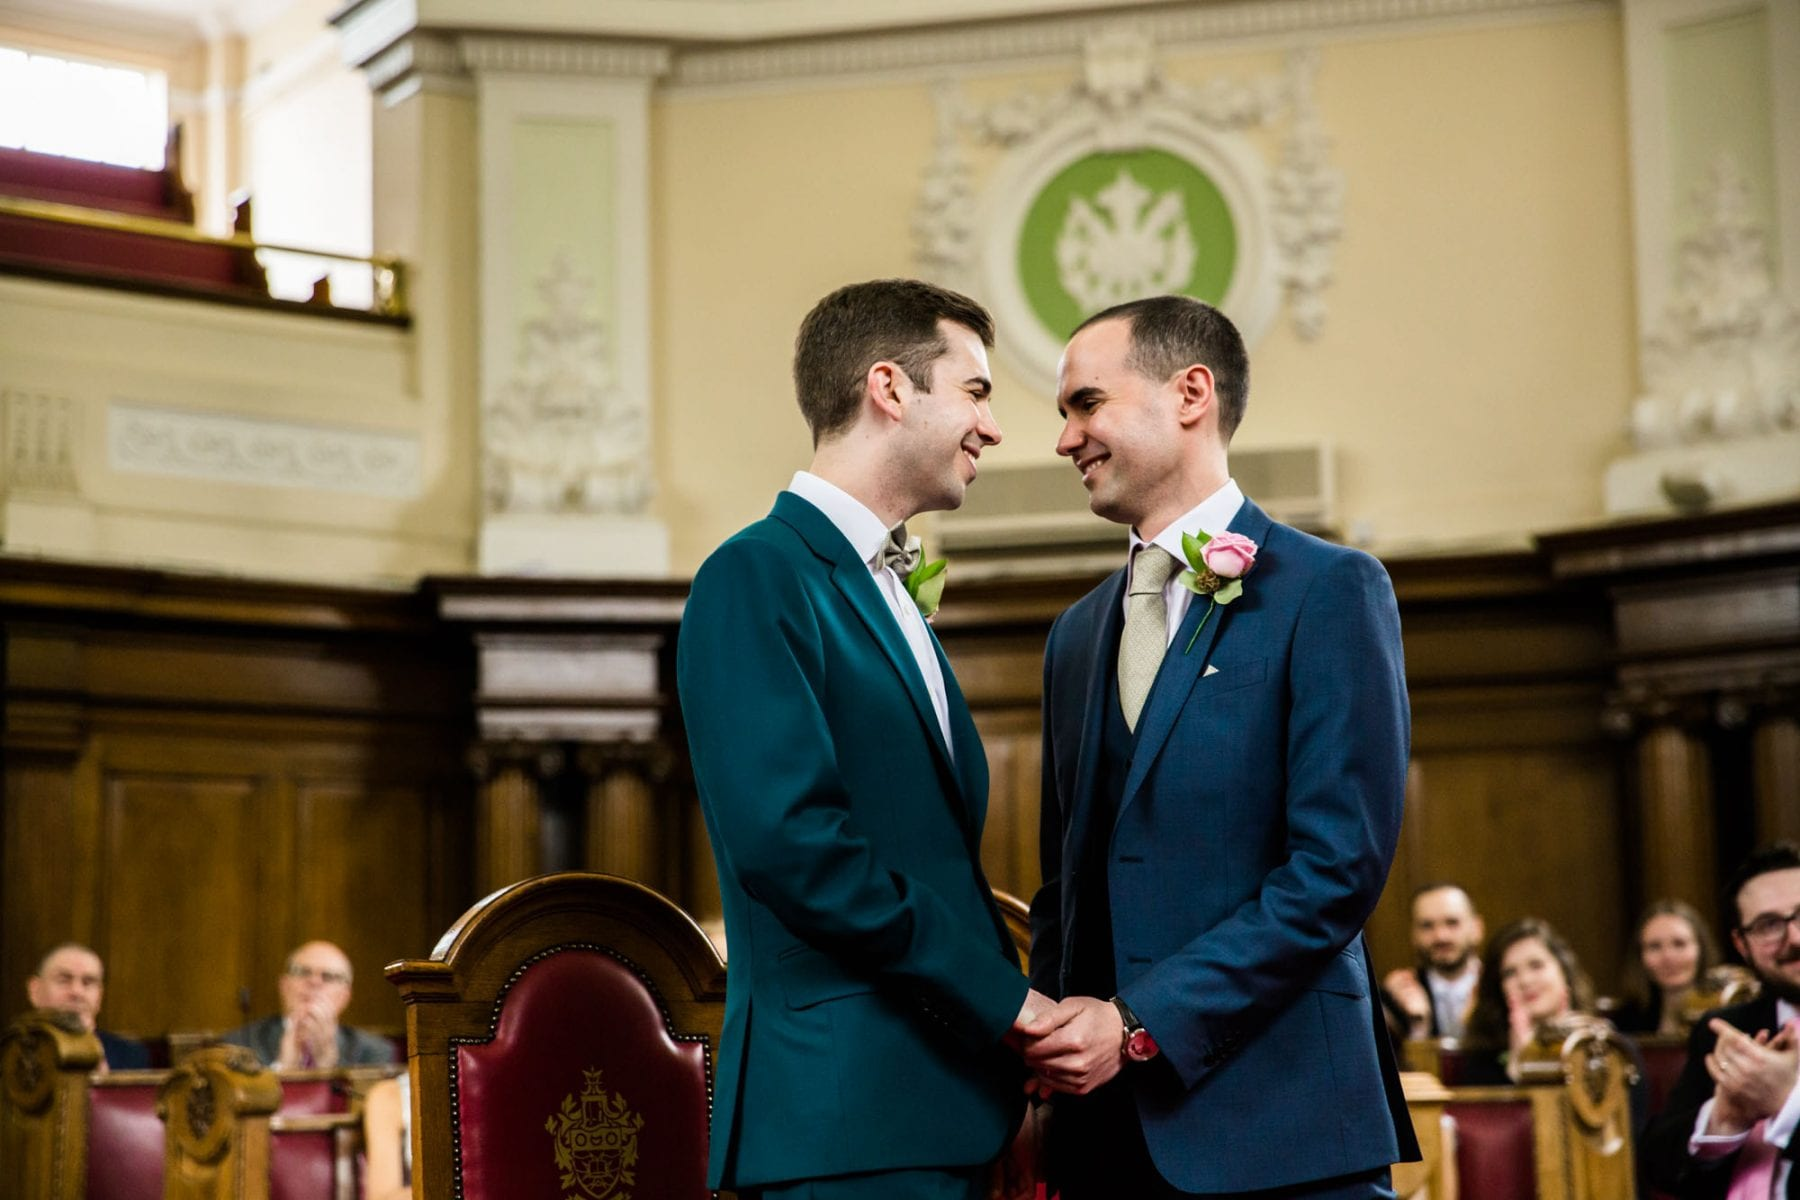 Islington Town Hall Wedding Ceremony Photography